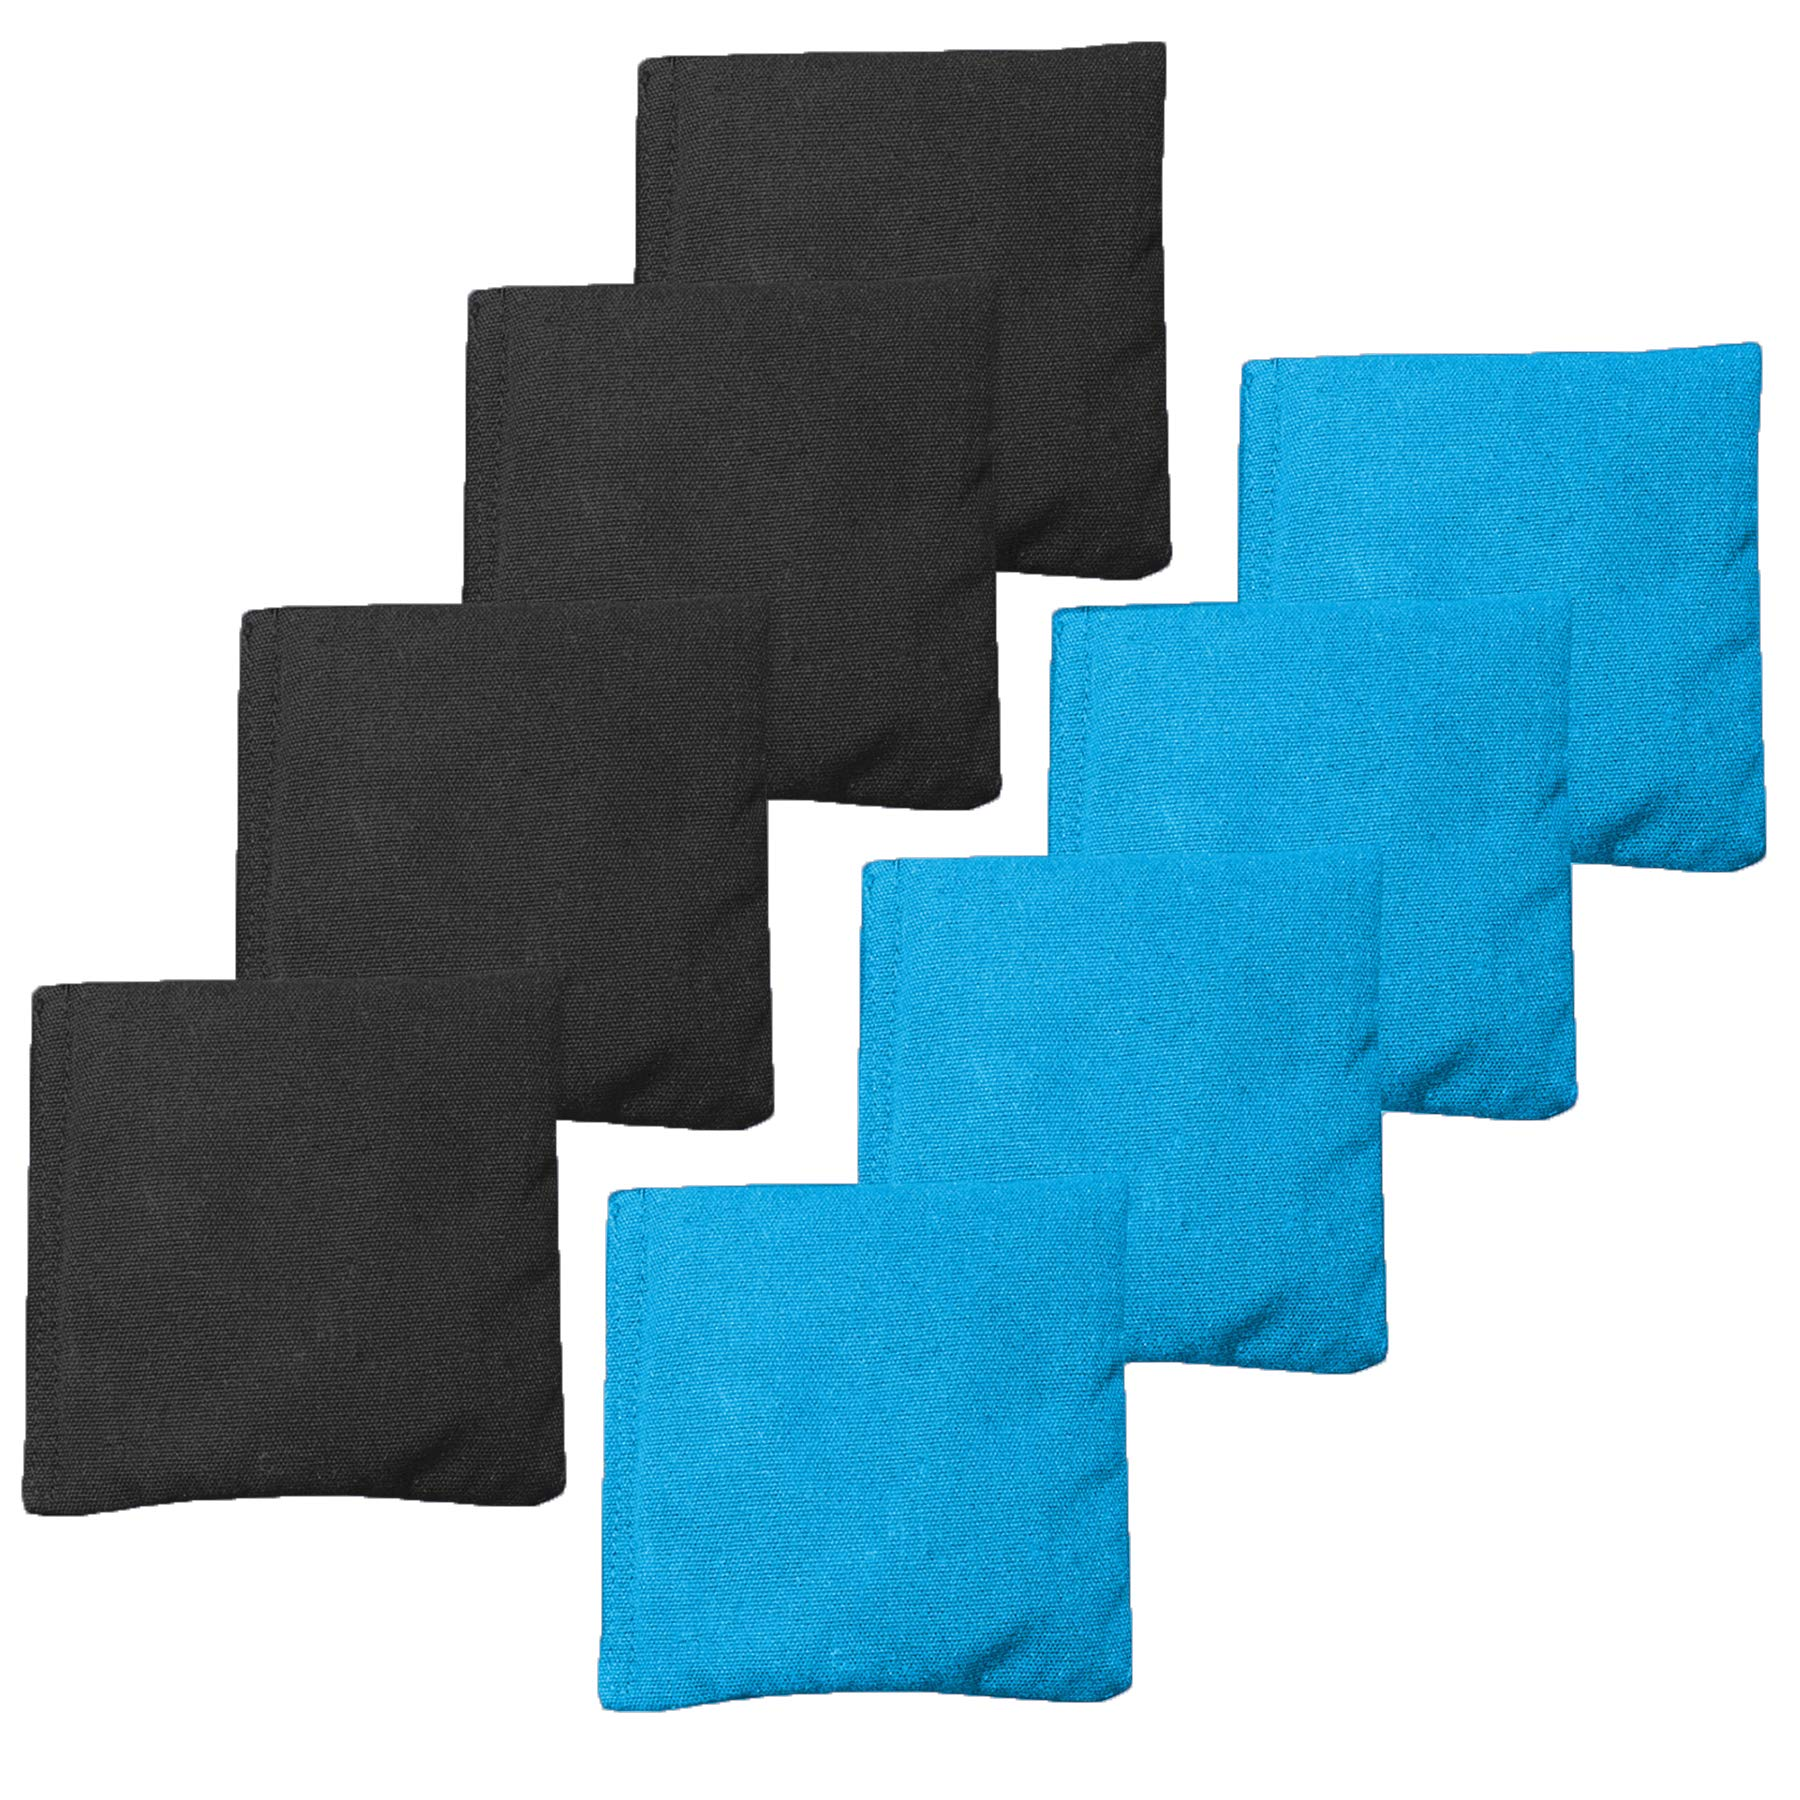 Weather Resistant Cornhole Bean Bags Set of 8 - Regulation Size & Weight - Light Blue & Black by Play Platoon